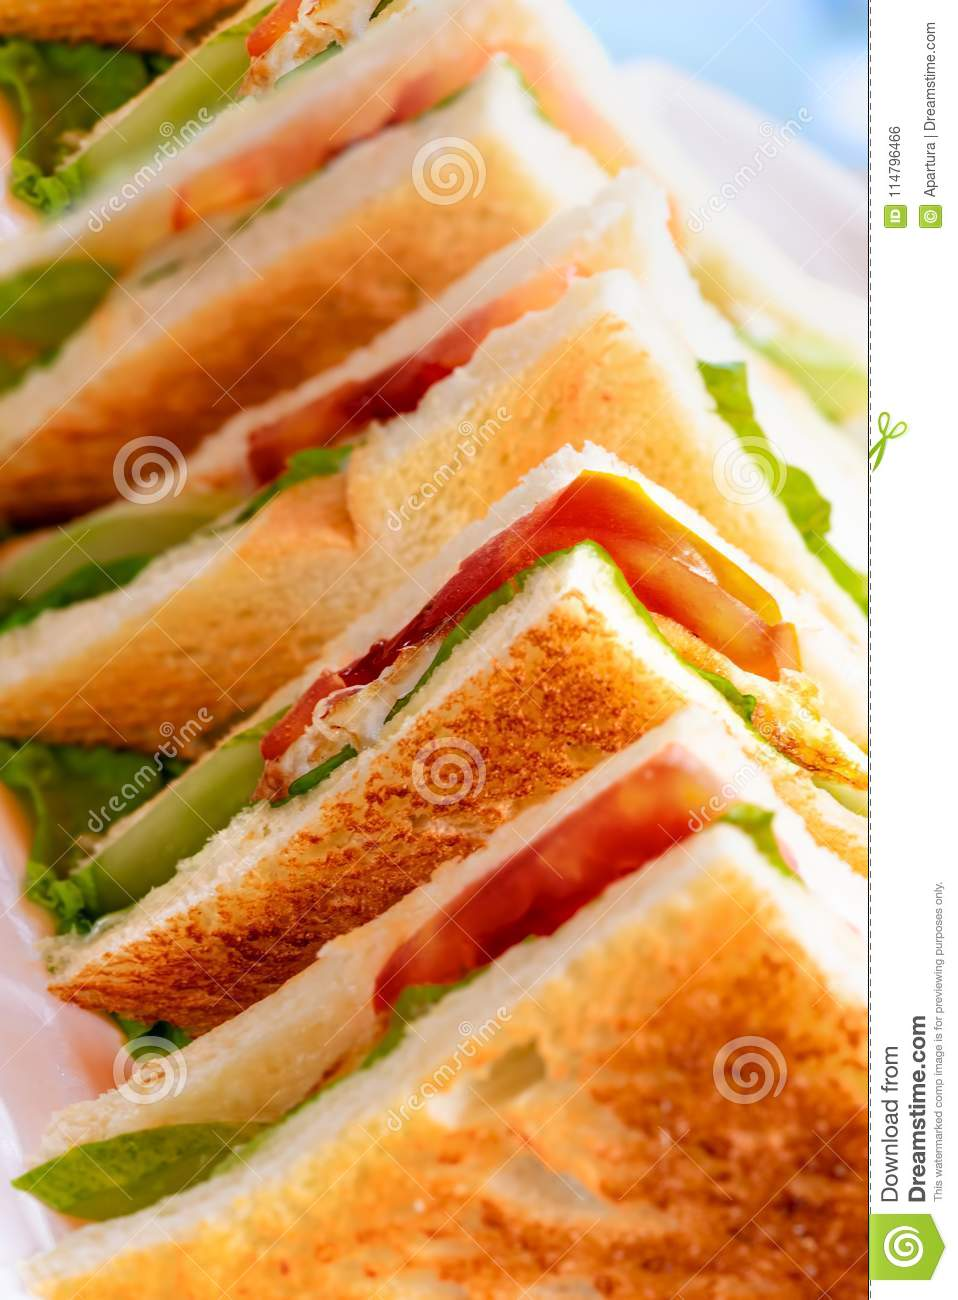 Row of toasted club sandwich with tomato, lettuce, egg and mayonaise